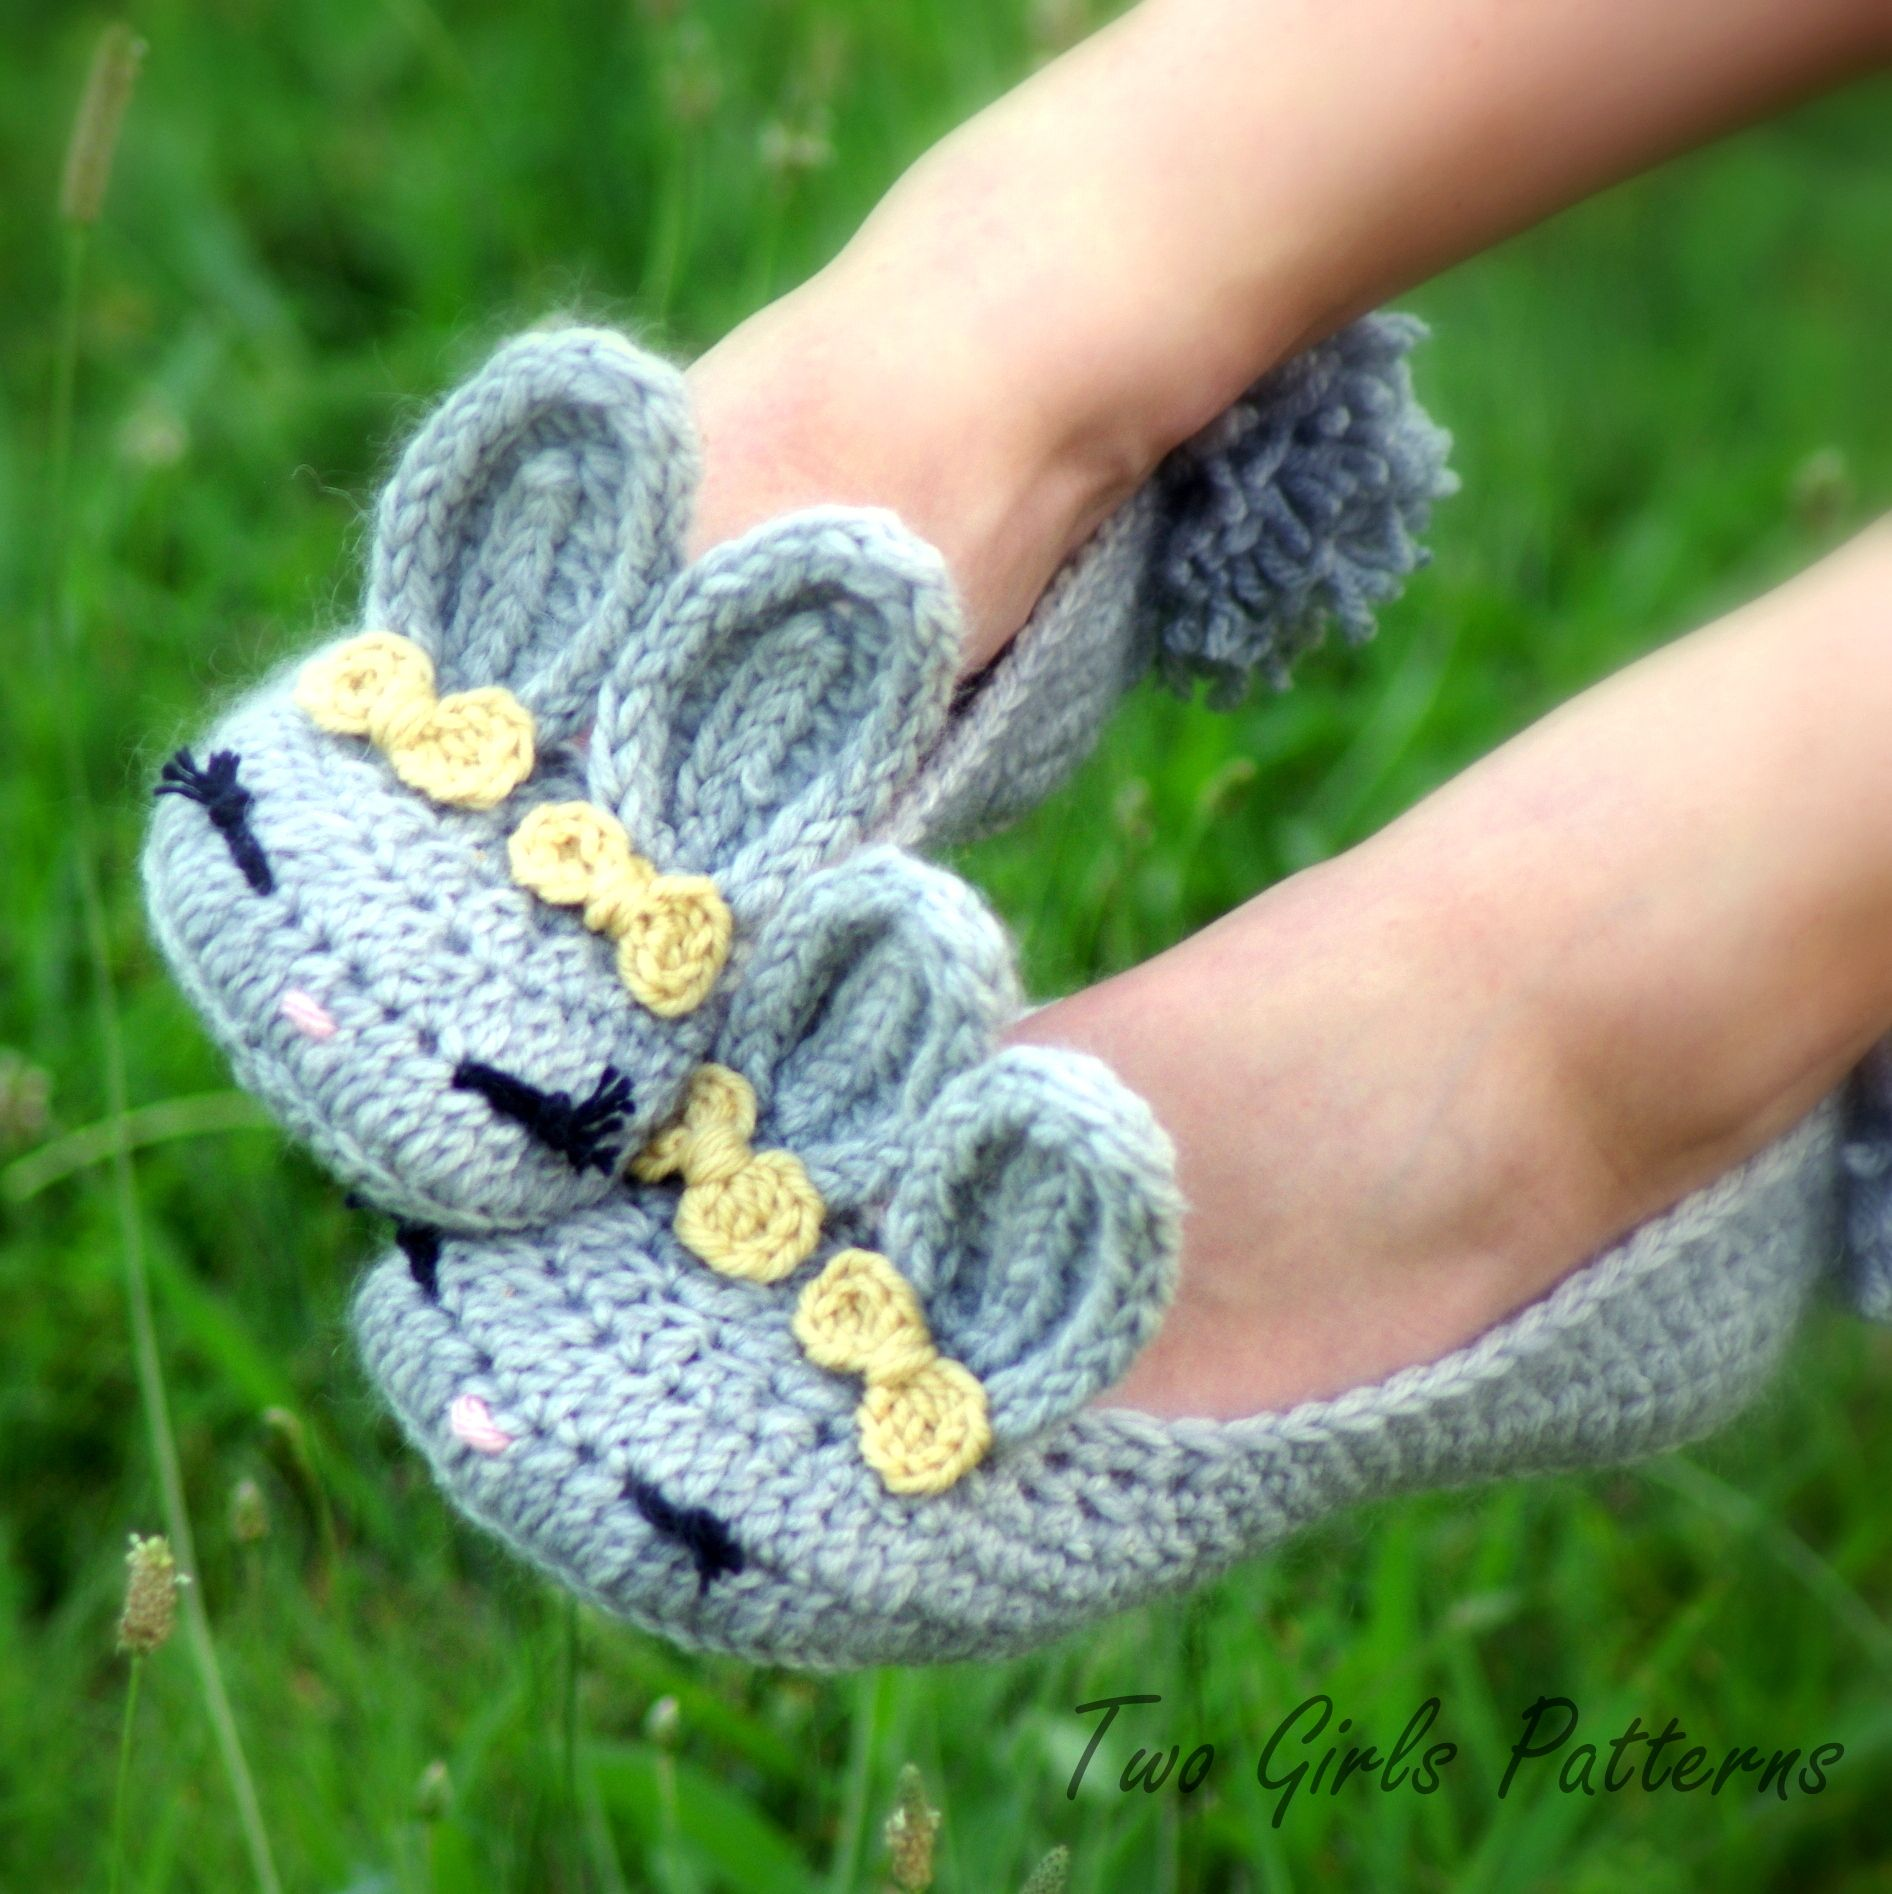 Cute as a button womens house slipper pattern two girls patterns womens bunny house slipper pdf crochet pattern six sizes included womens 5 10 pattern number 212 for s bankloansurffo Image collections